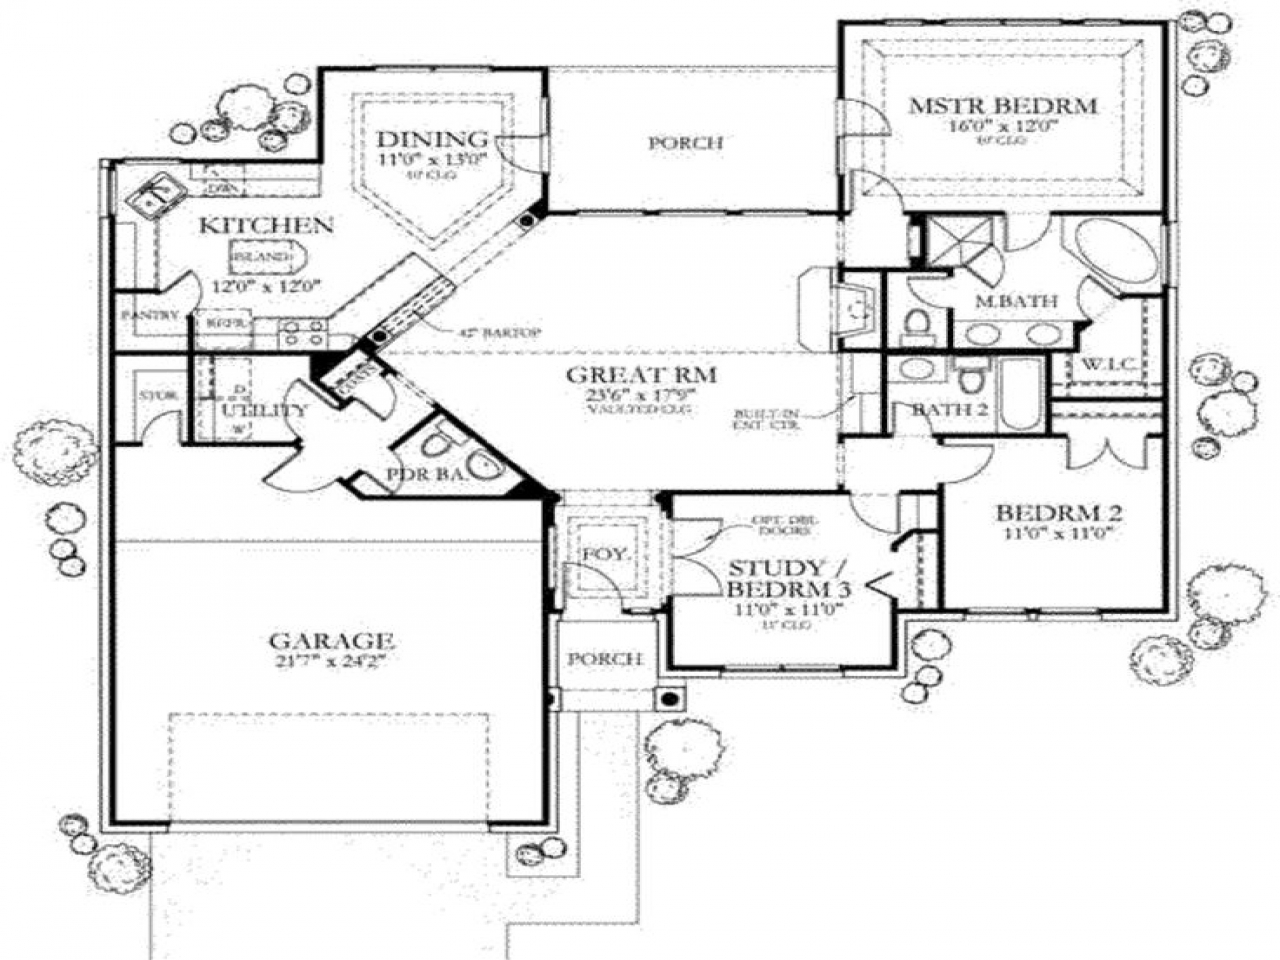 1500 sq ft house floor plans 1500 sq ft one story house for Floor plans 1500 sq ft ranch